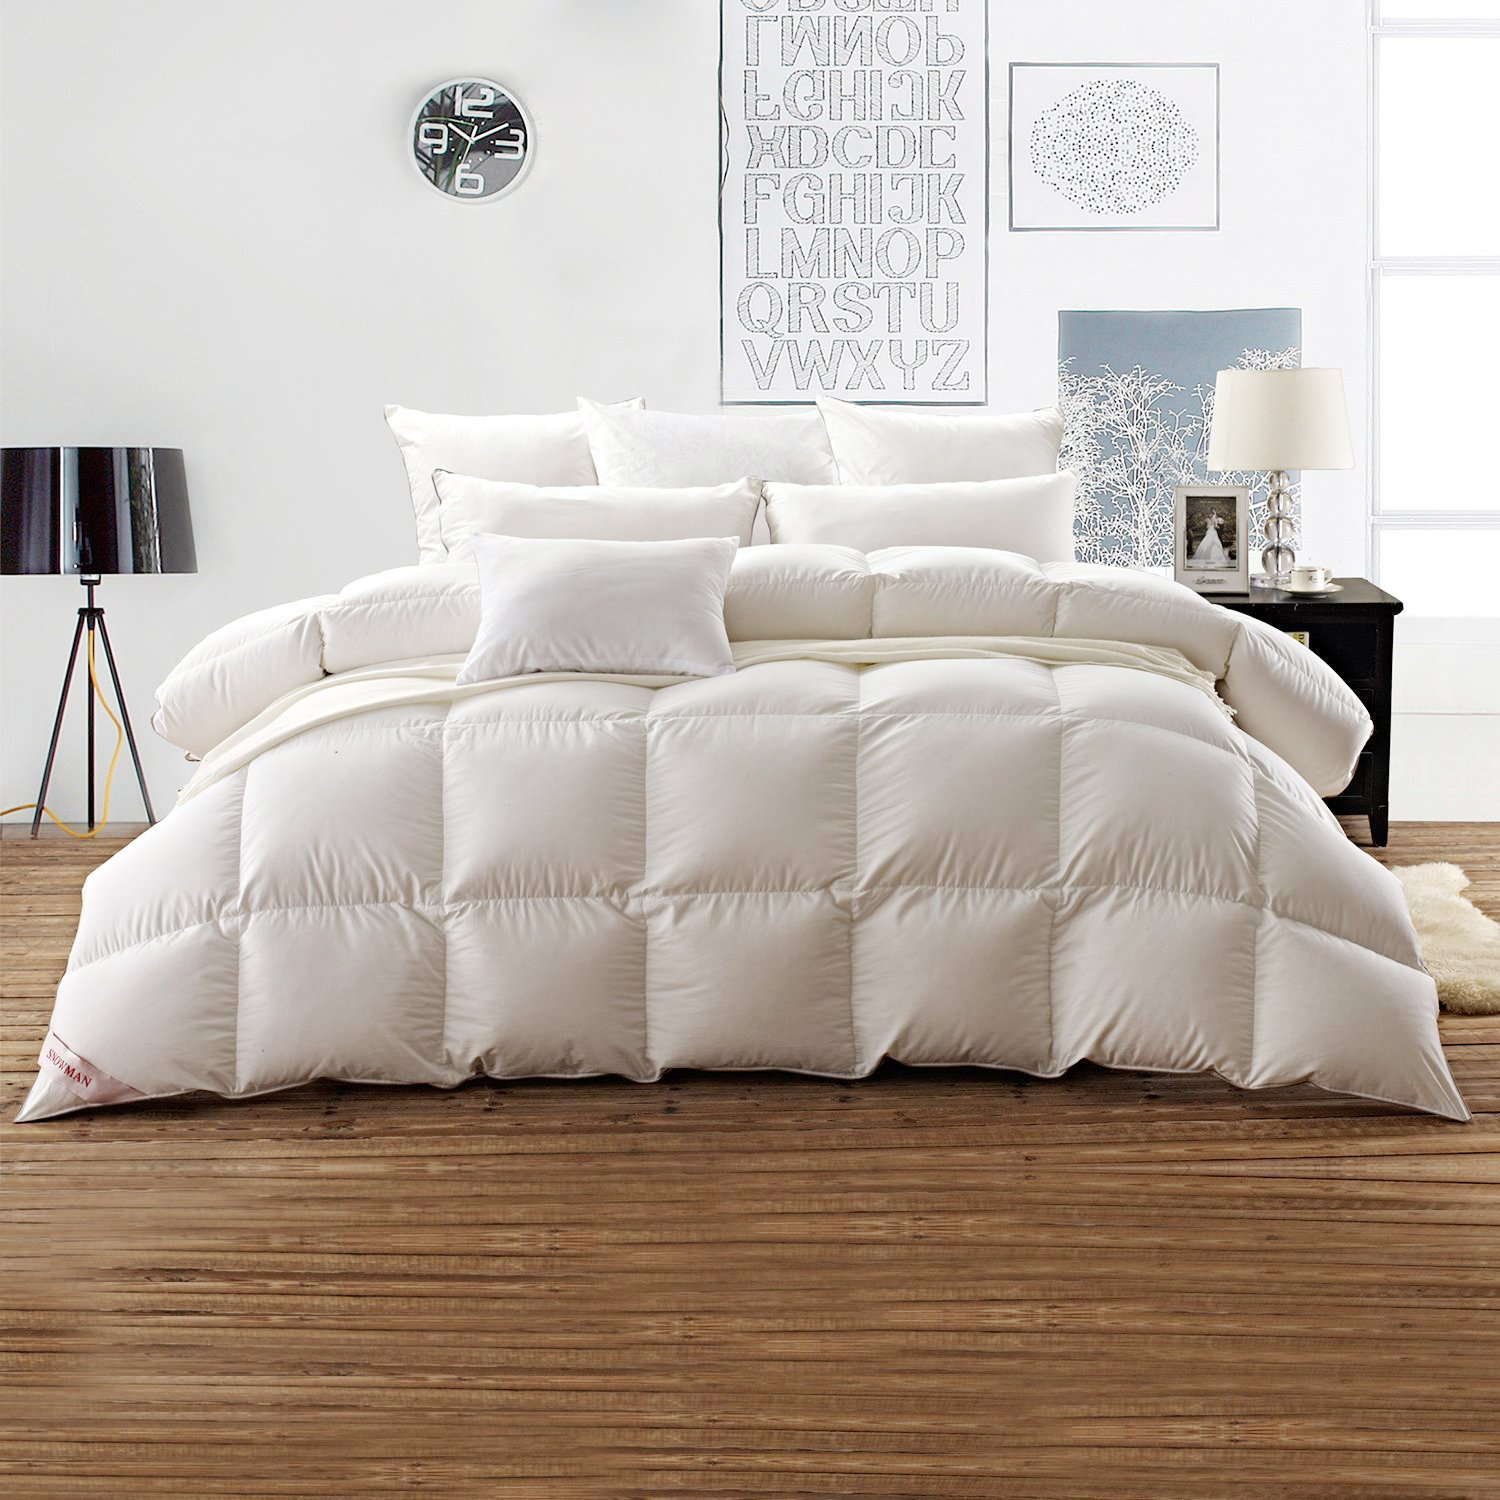 Snowman White Goose Down Comforter CAL King Size 100% Egyptian Cotton Shell Down Proof,600 Thread Count-Solid White Hypo-allergenic SNOWMANBEDDING GDC00106-WHITE